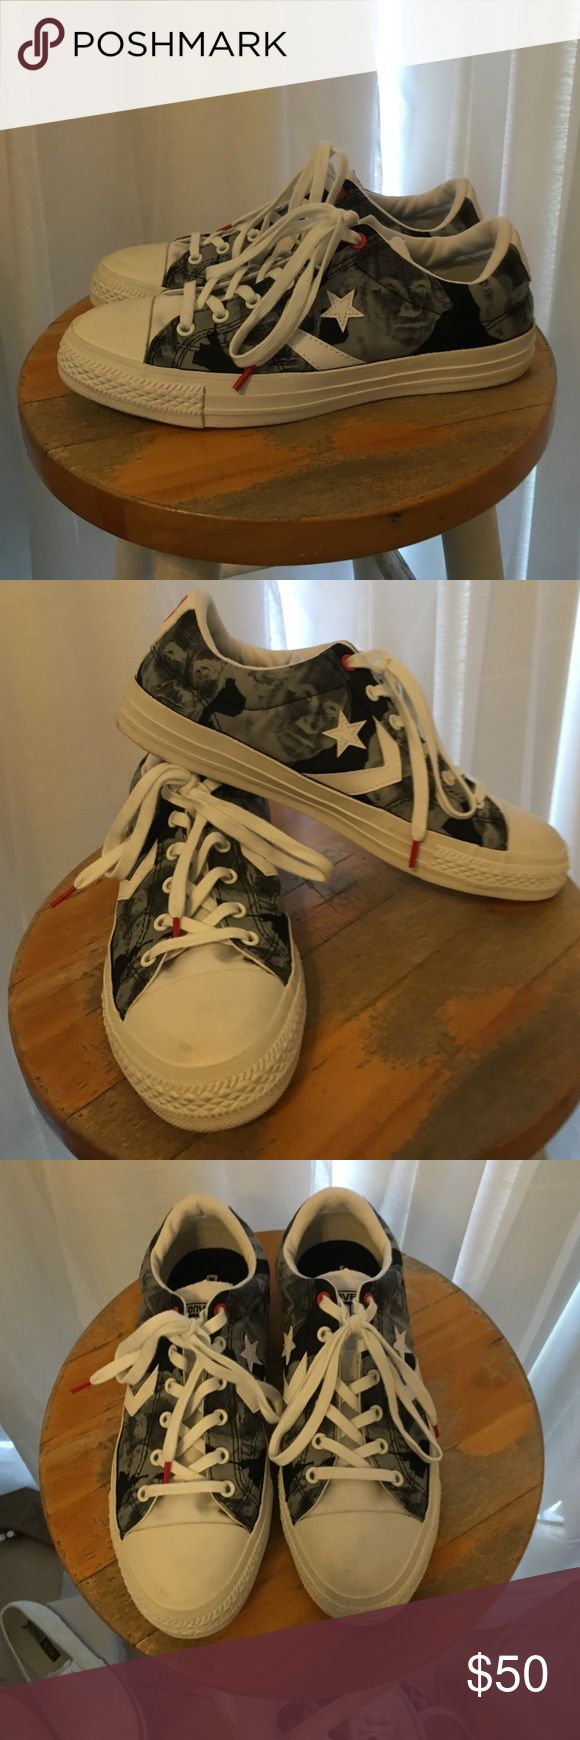 Converse one star tie dye sneakers like new!! These are so cool in white grey & black with red accents. All you need are these kicks to make a fashionista statement!! Converse one star Shoes Sneakers